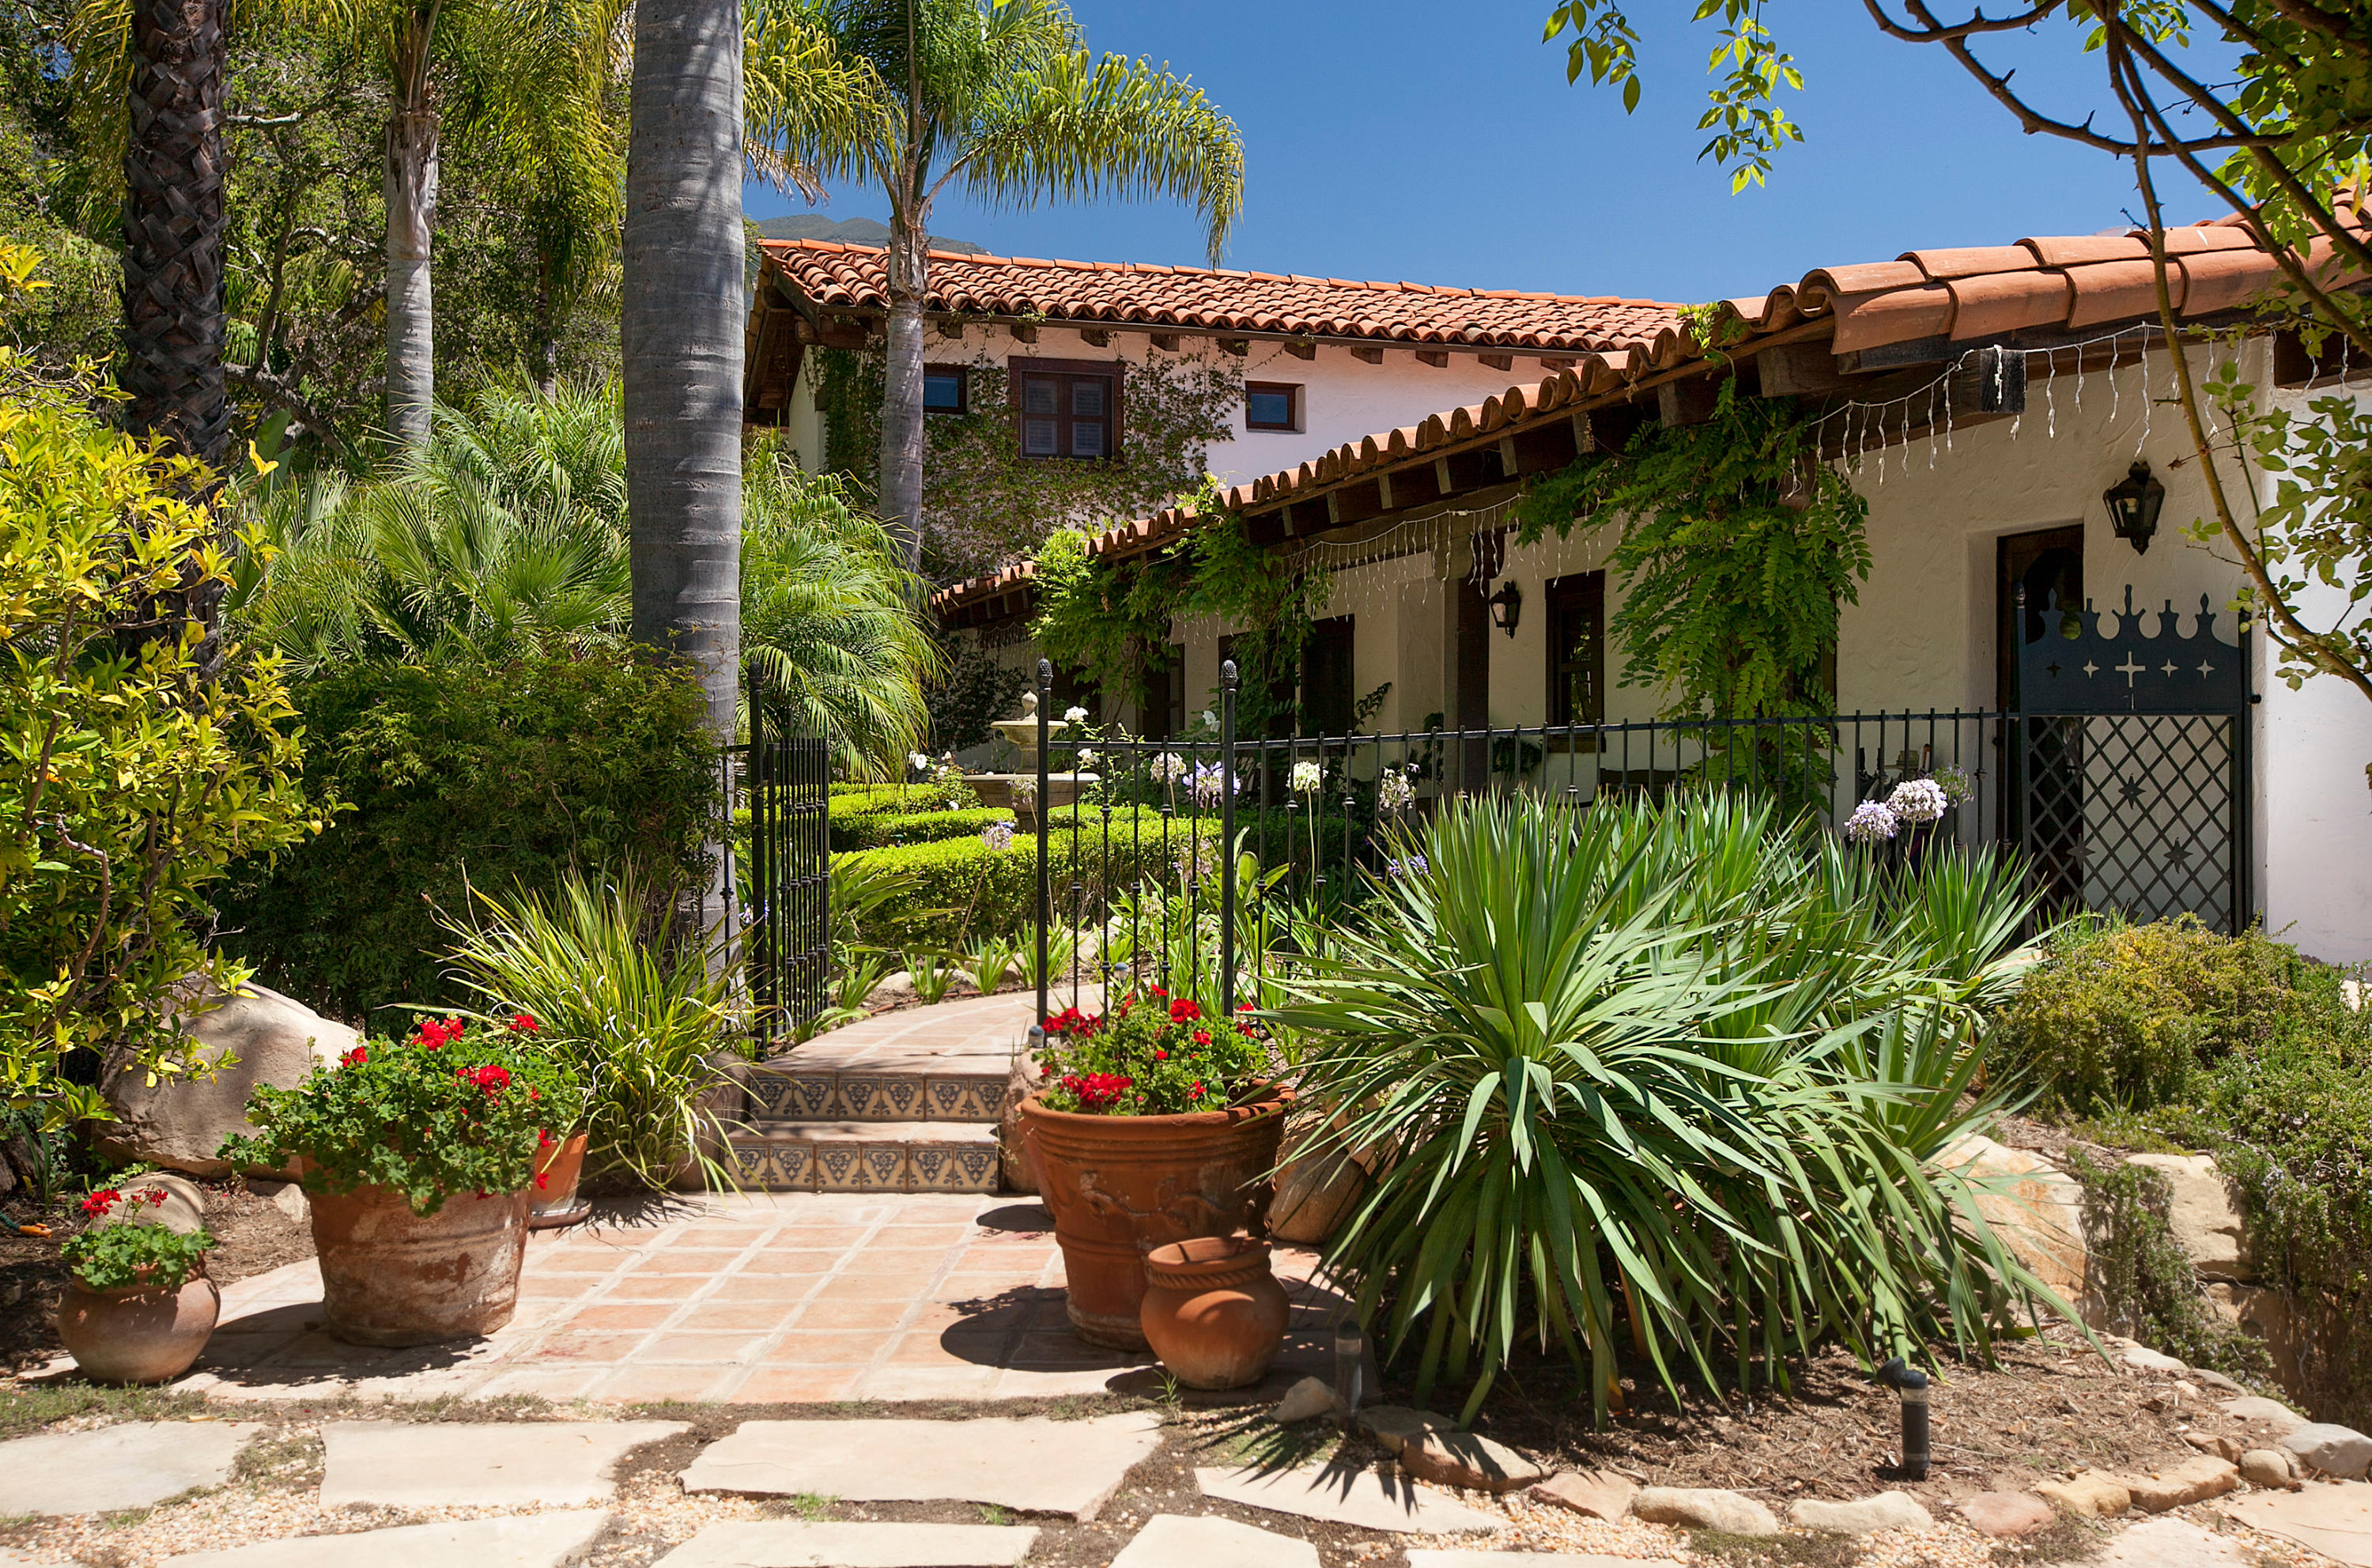 Property photo for 660 El Bosque Rd Santa Barbara, California 93108 - 15-88